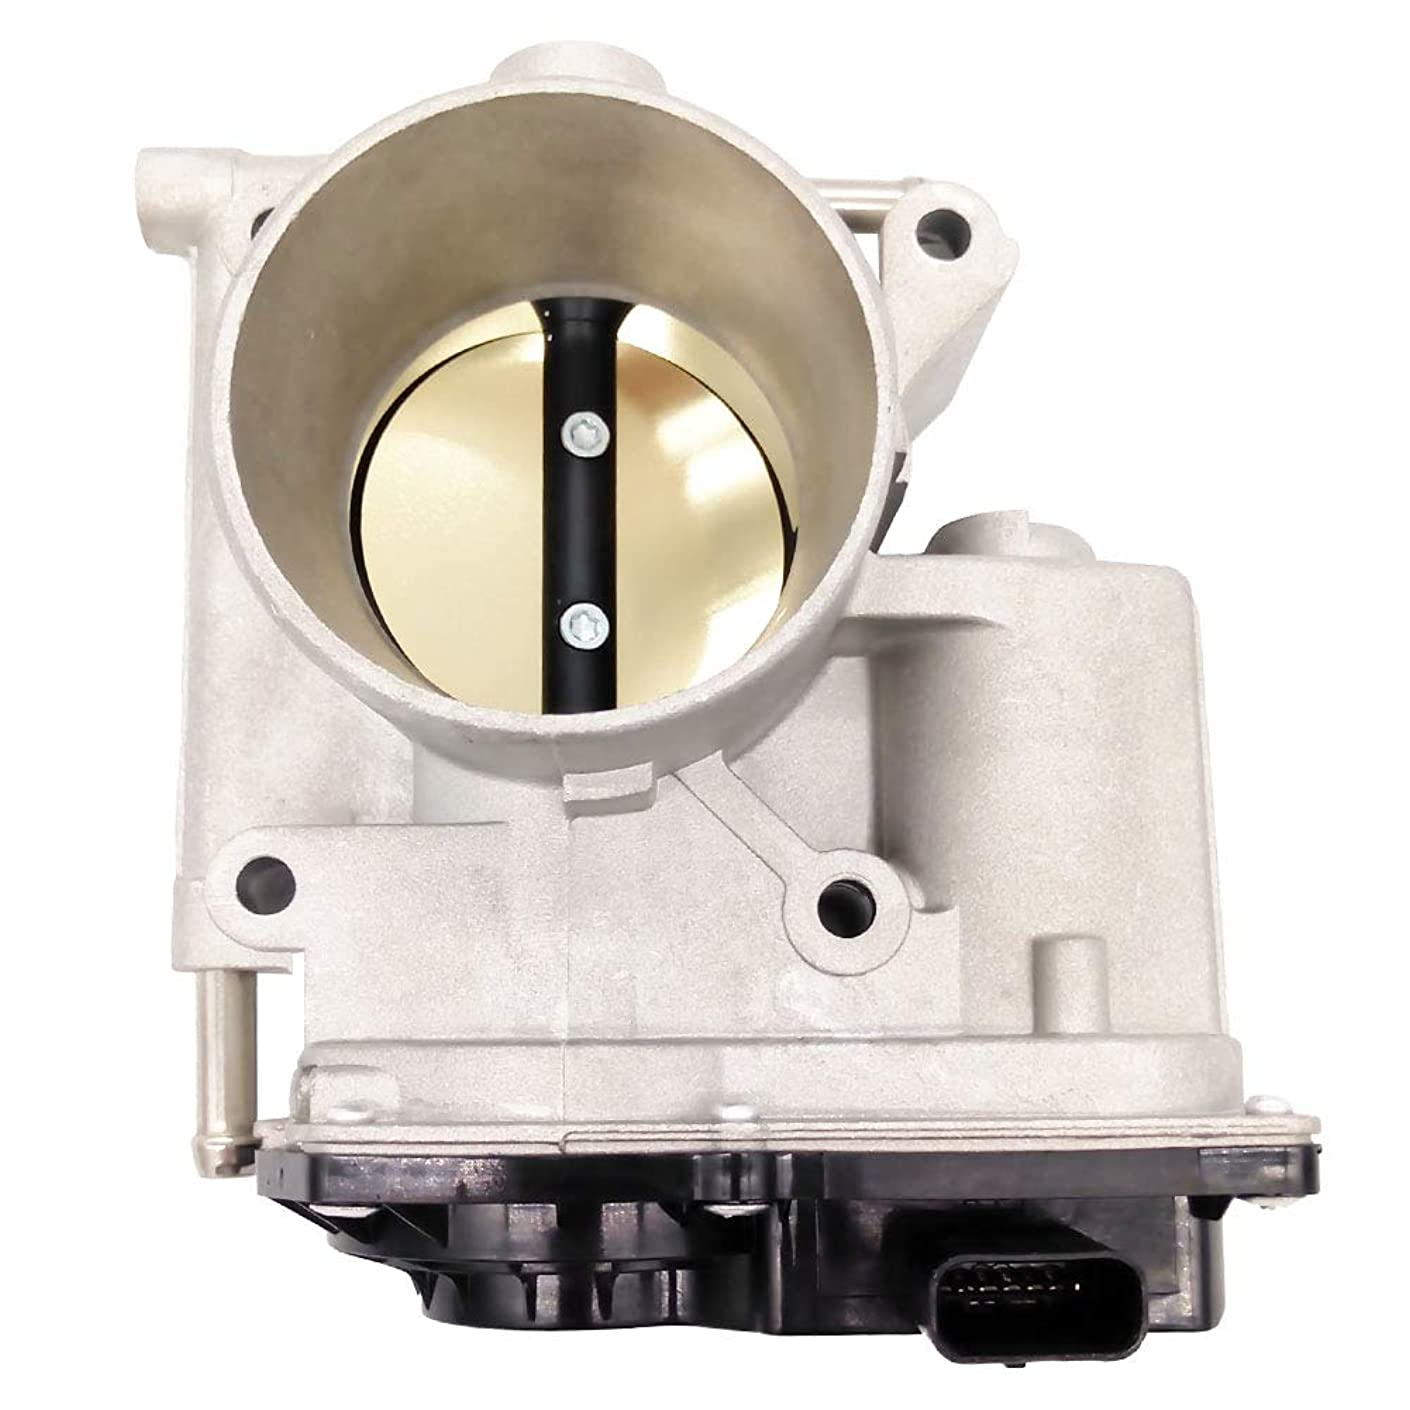 Germban L3R413640 Fuel Injection Throttle Body Assembly Fits for Mazda 3 Mazda 5 Mazda 6 2.0L 2.3L Non-Turbo